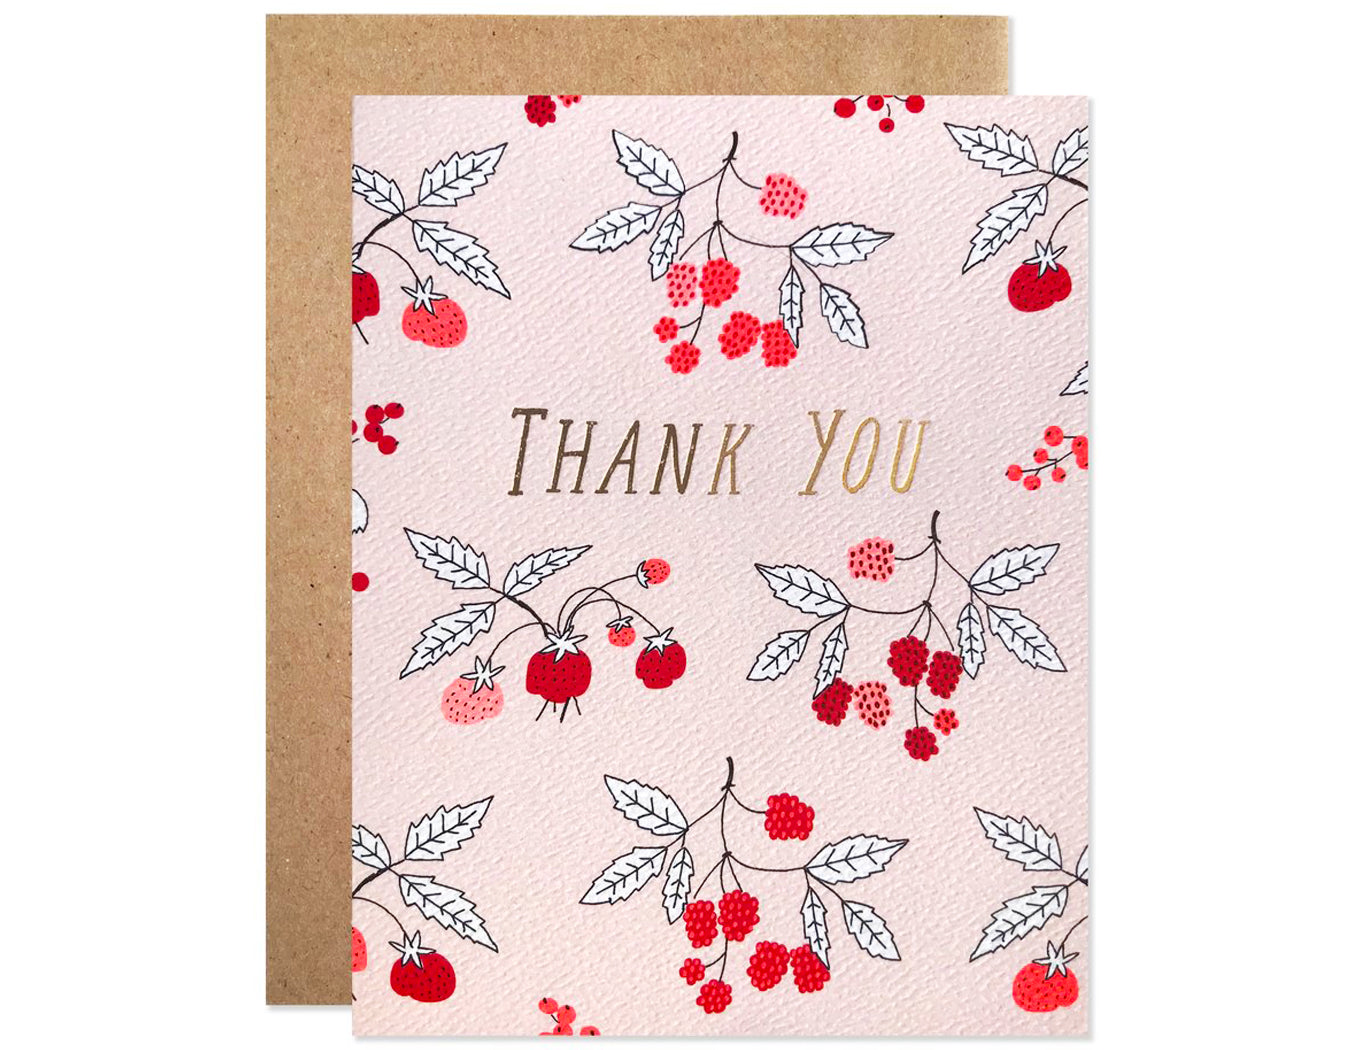 berries on pale pink background text reads thank you in gold foil